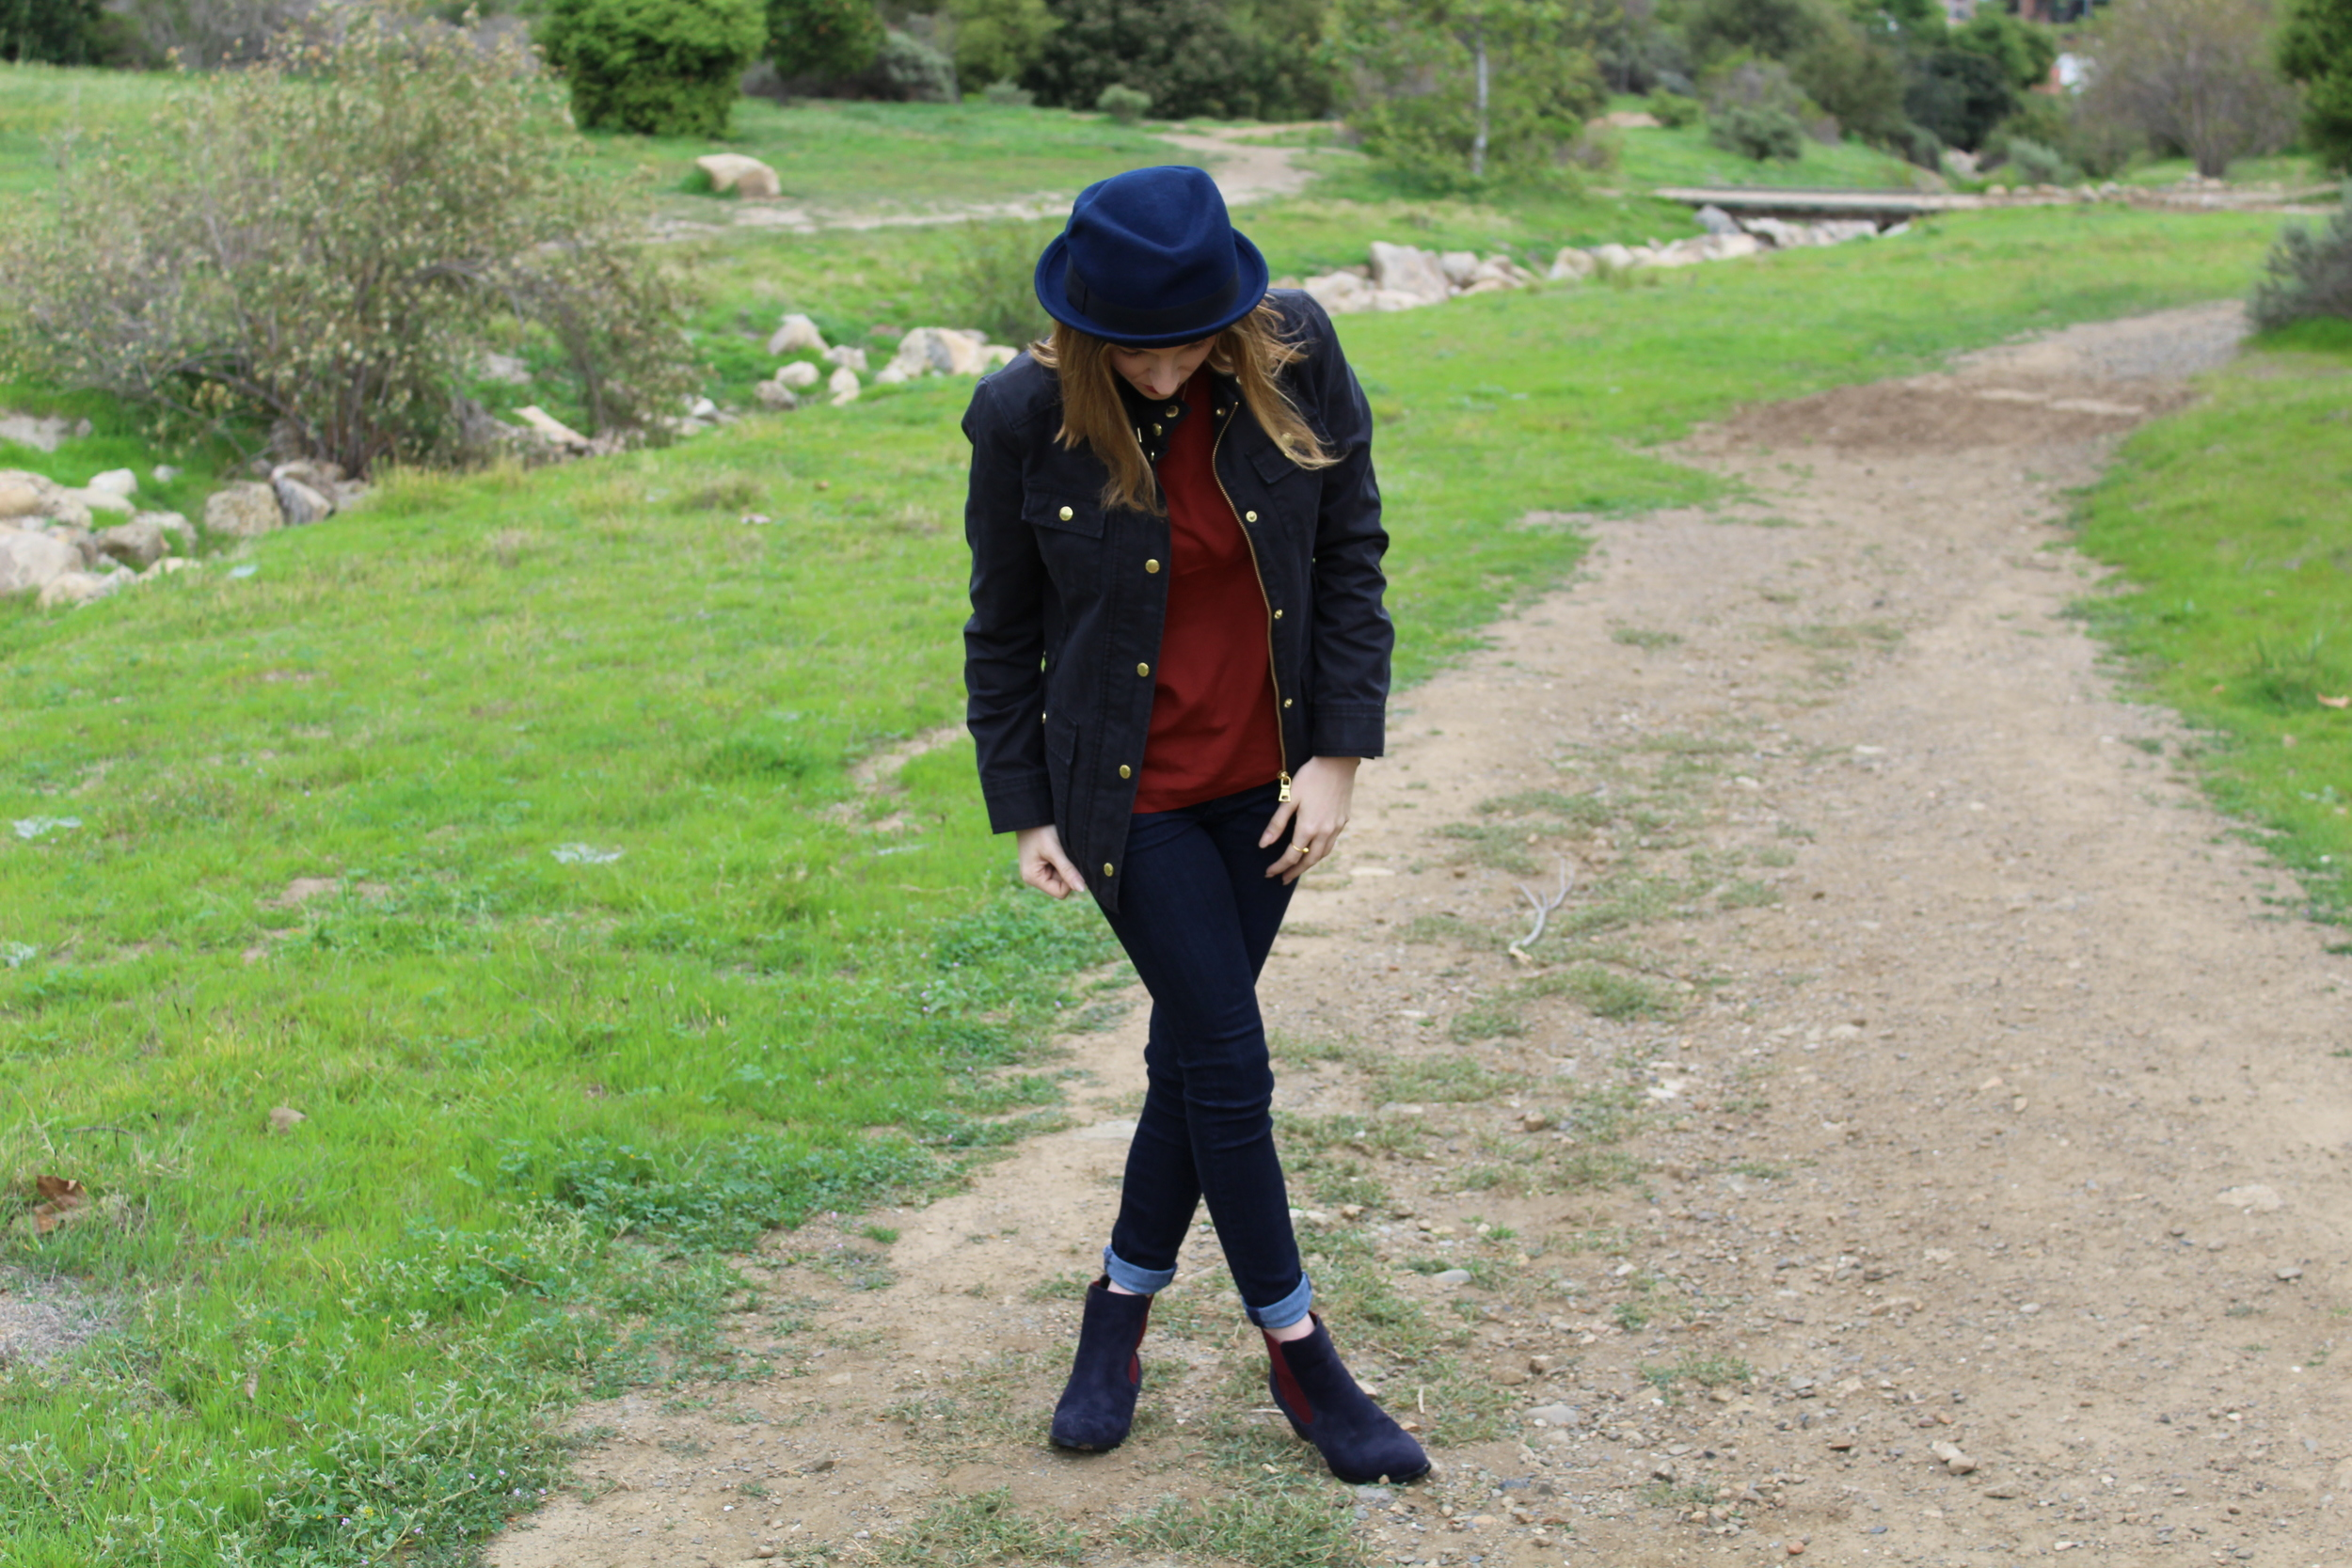 For me, the hat and the shoes are what really tied this look together. The shoes have both navy and red in them which paired great with the jeans and top combo. The jacket is also a dark navy which was perfect, because it was a little rainy this day.